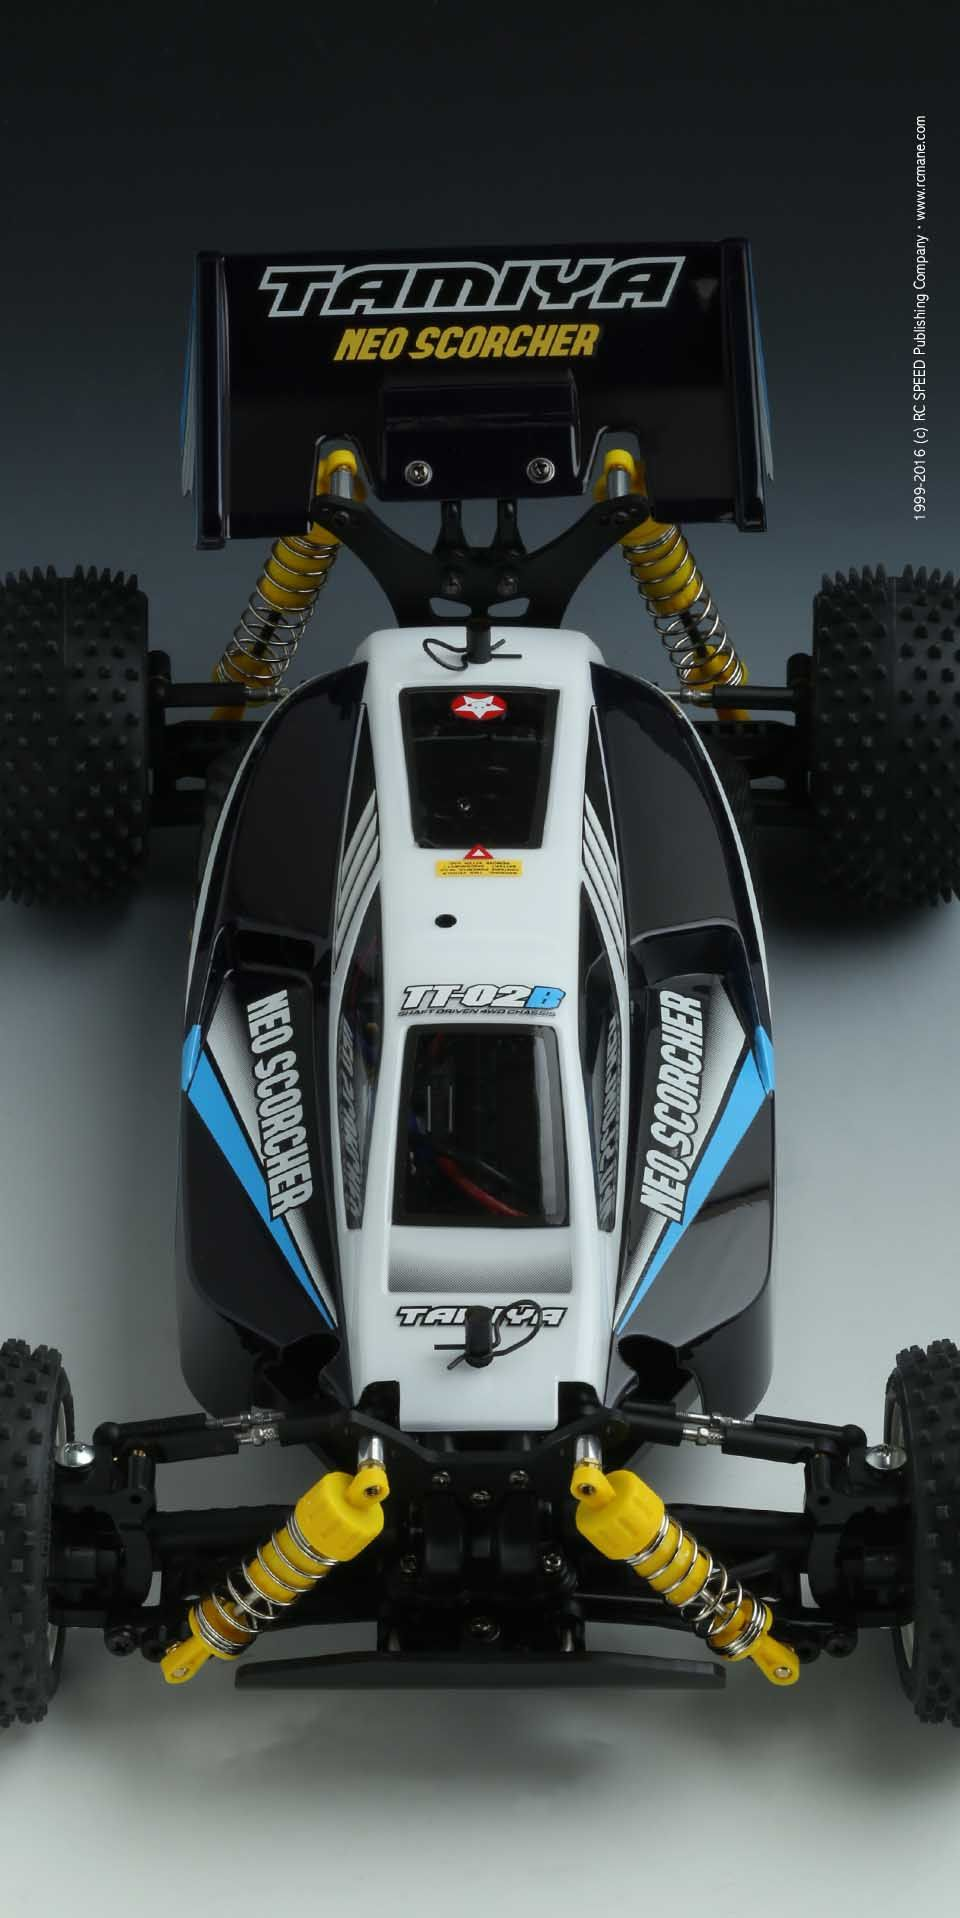 Prepainted FTW Th Buggy Bodies RC Cars Pinterest Radio - Custom vinyl decals for rc carsimages of cars painted with flames true fire flames on rc car